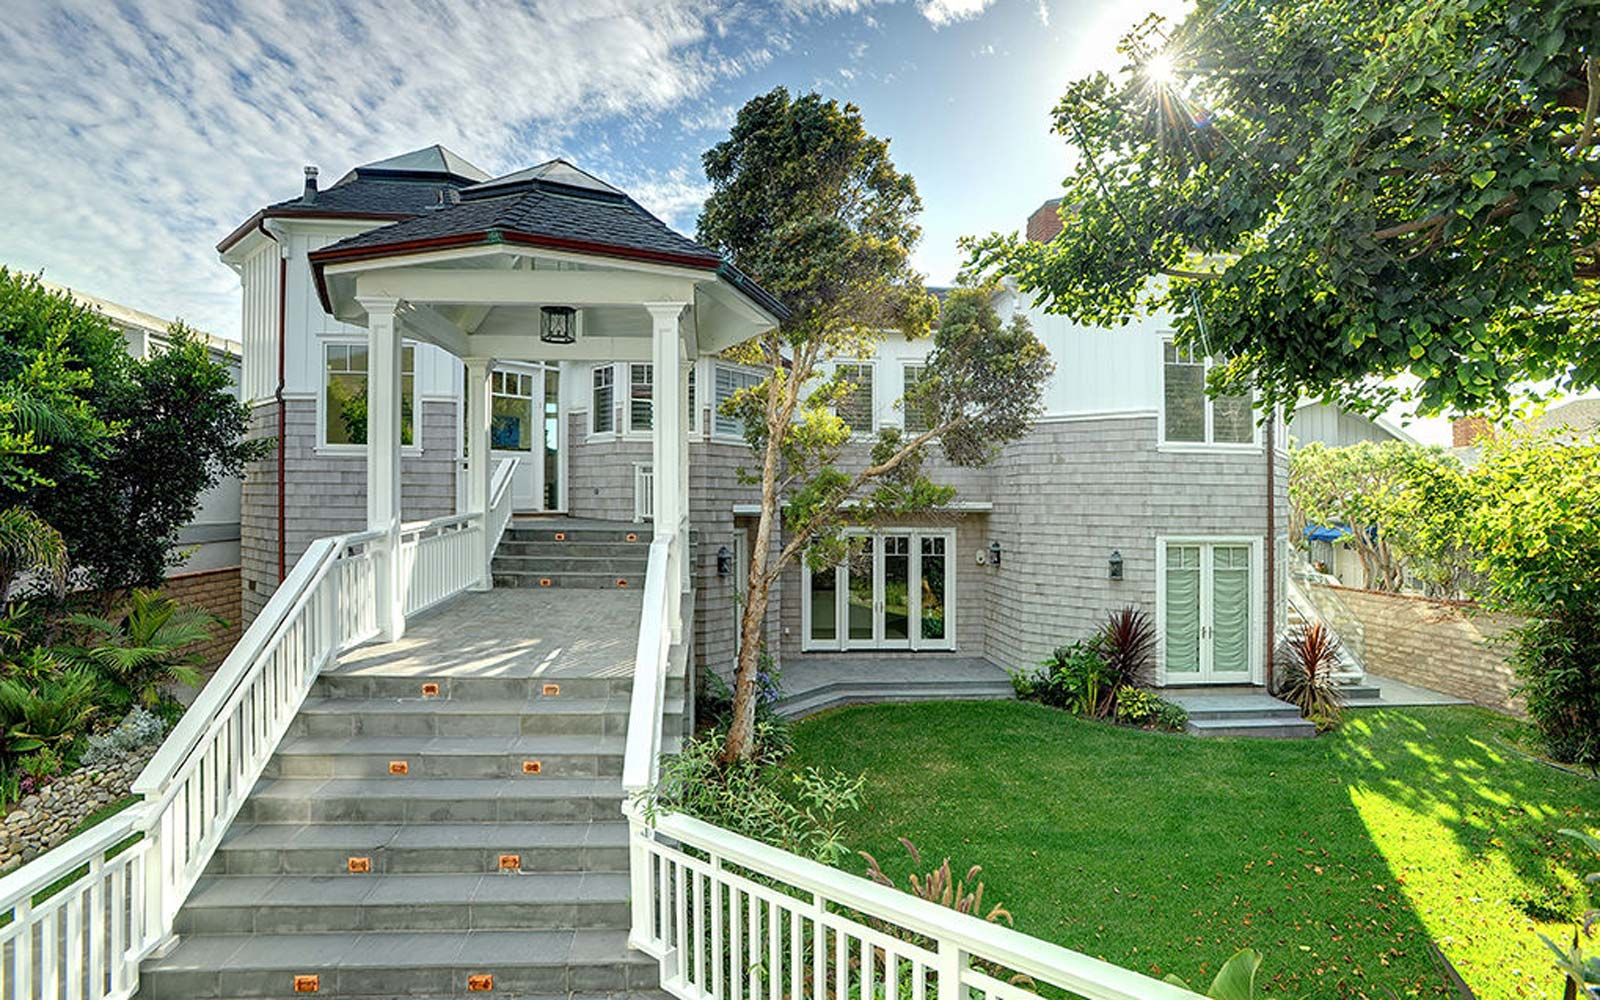 Reese Witherspoon's 'Big Little Lies' Beach House Is Available to Rent